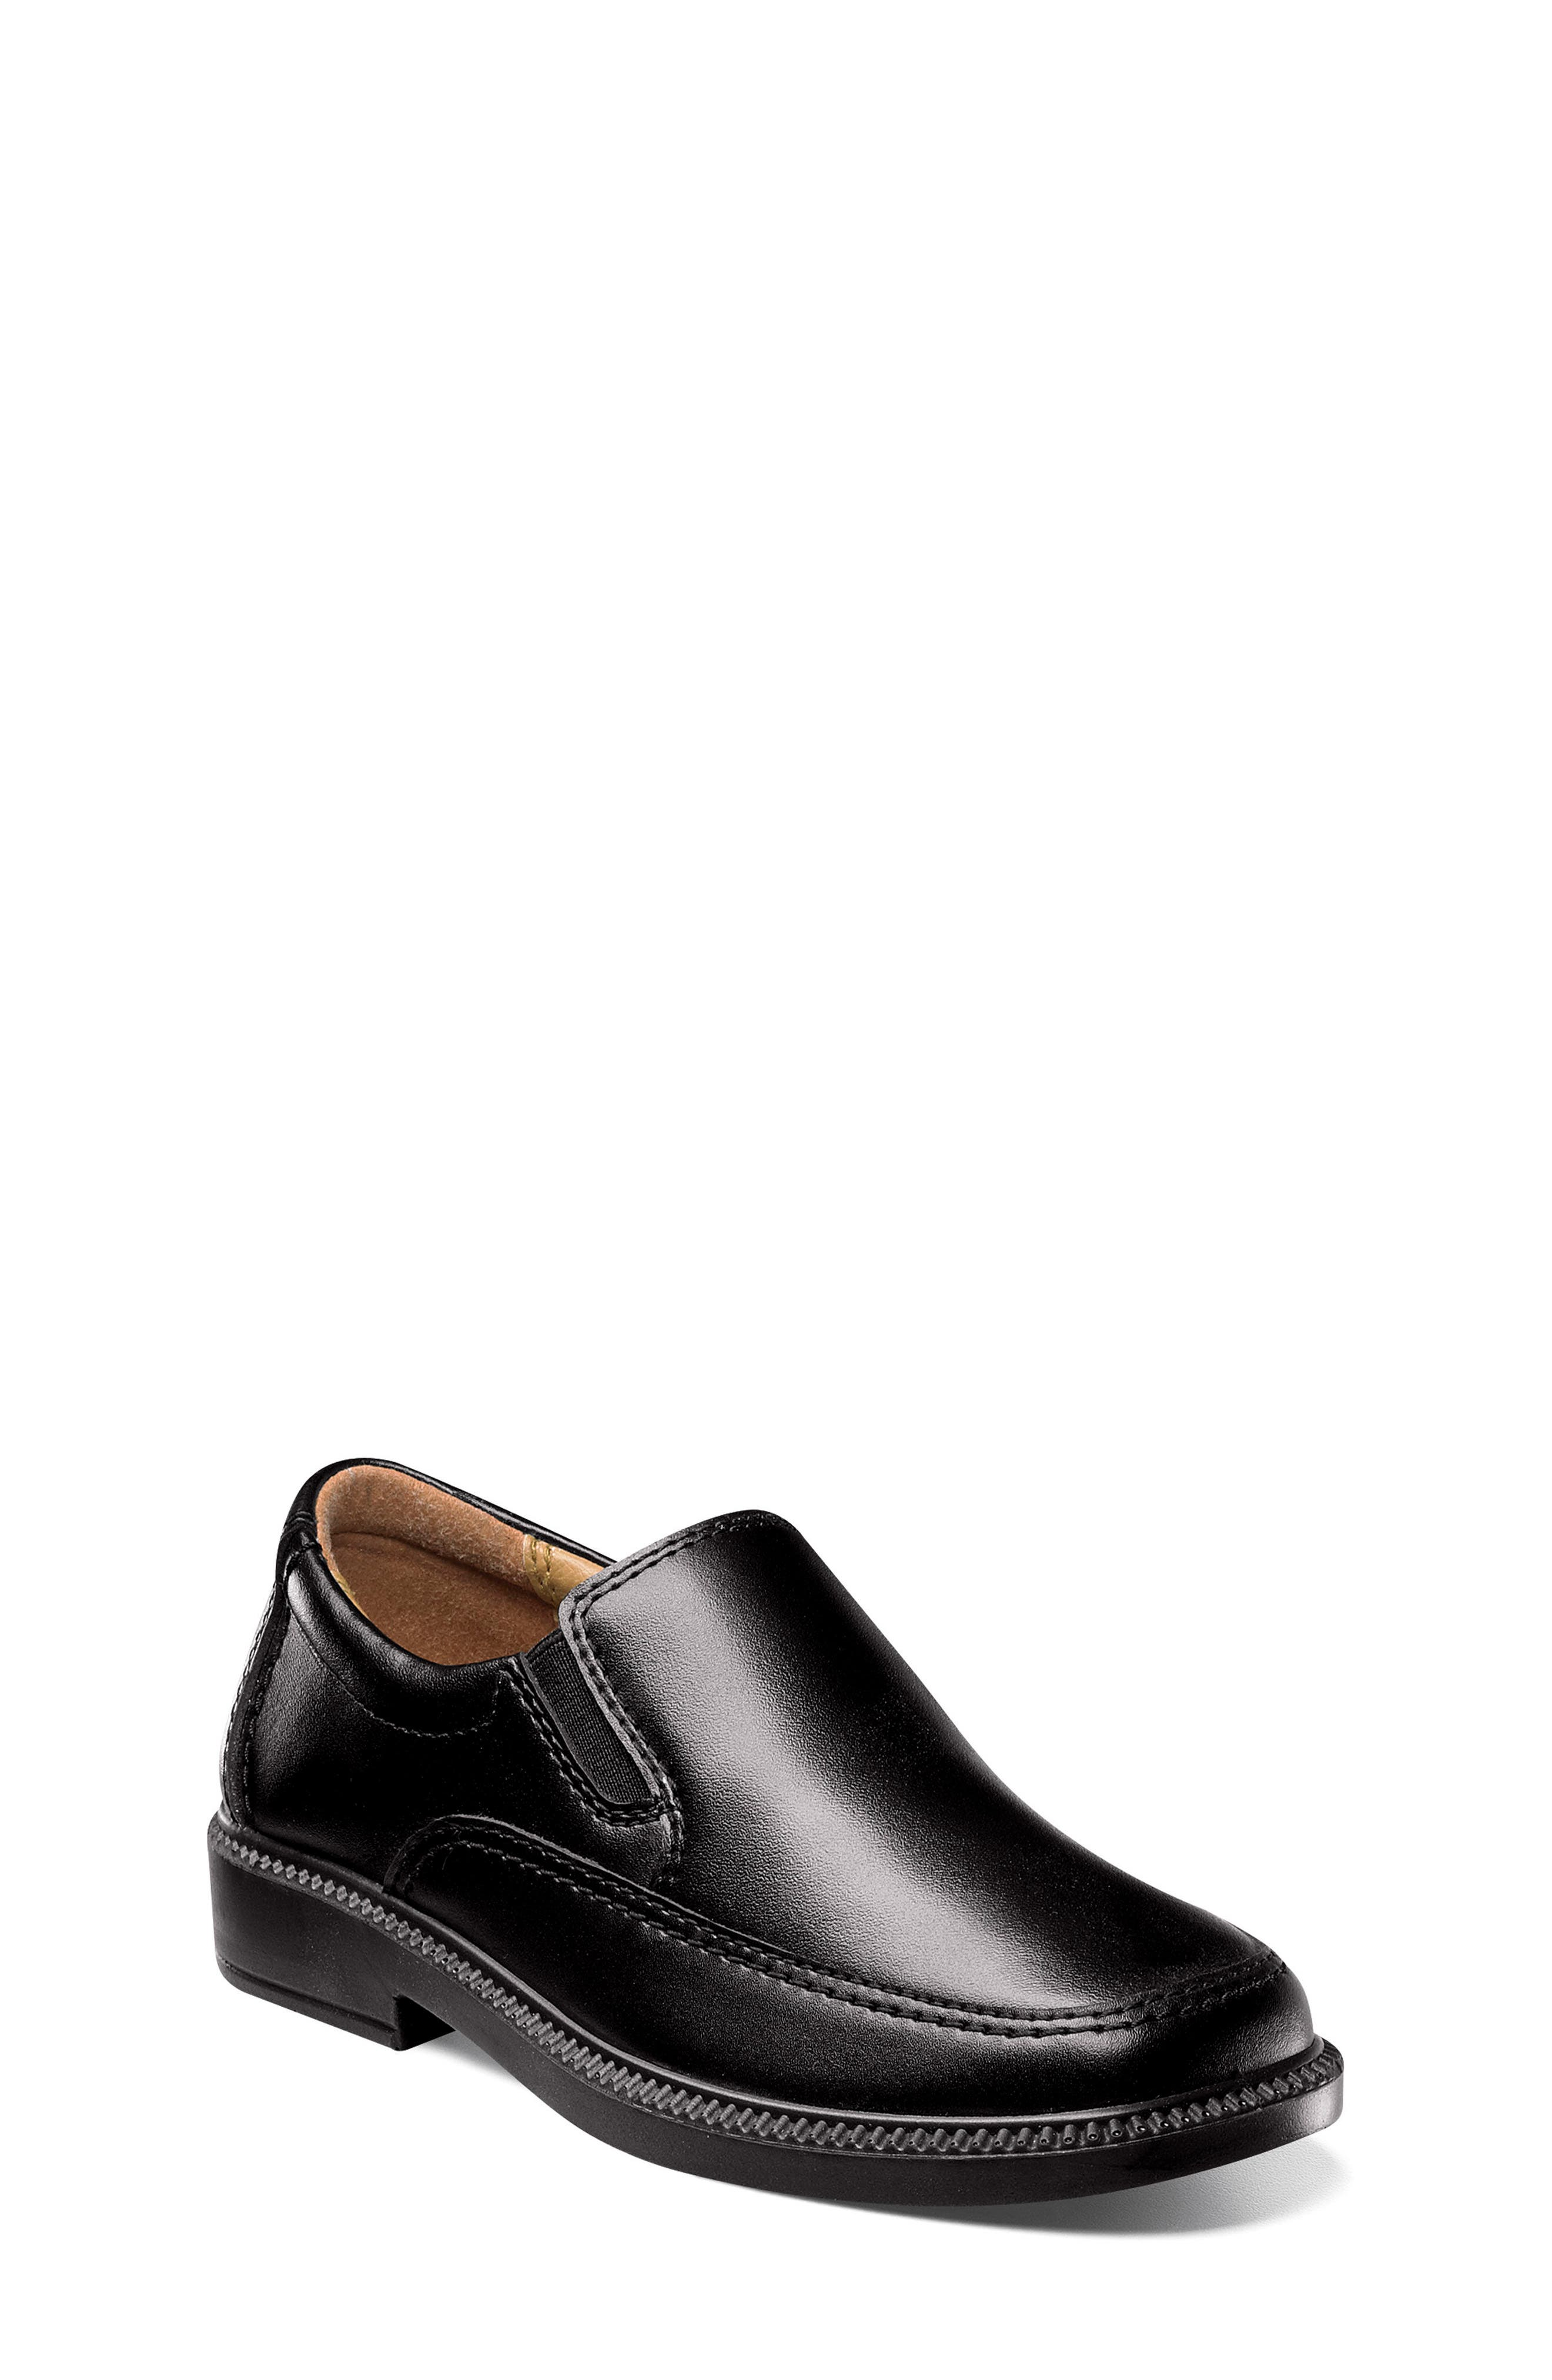 FLORSHEIM, 'Bogan' Slip-On, Main thumbnail 1, color, BLACK